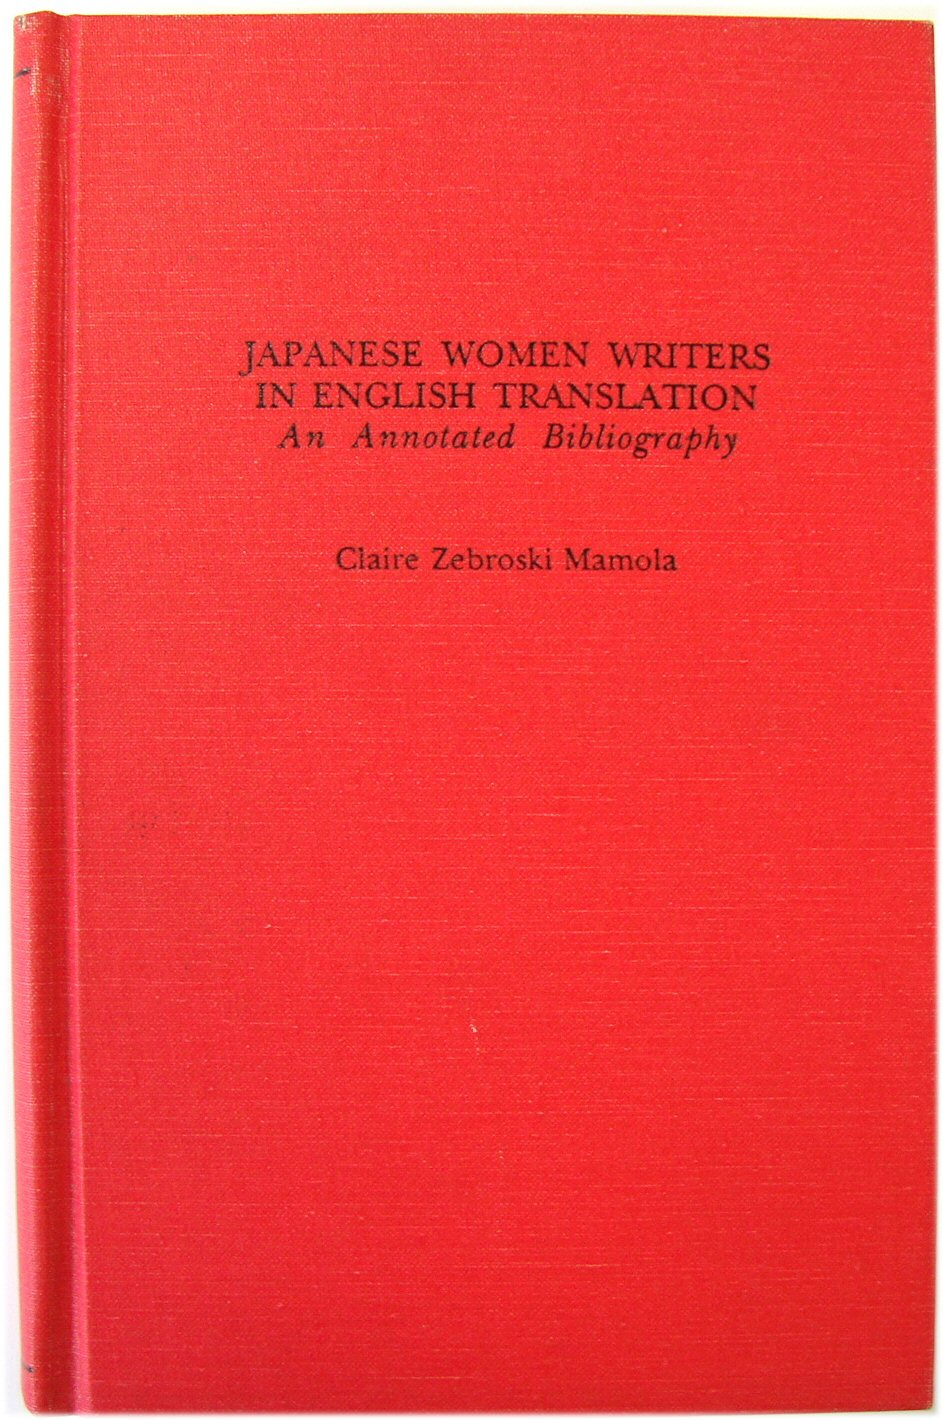 Image for Japanese Women Writers in English Translation: An Annotated Bibliography